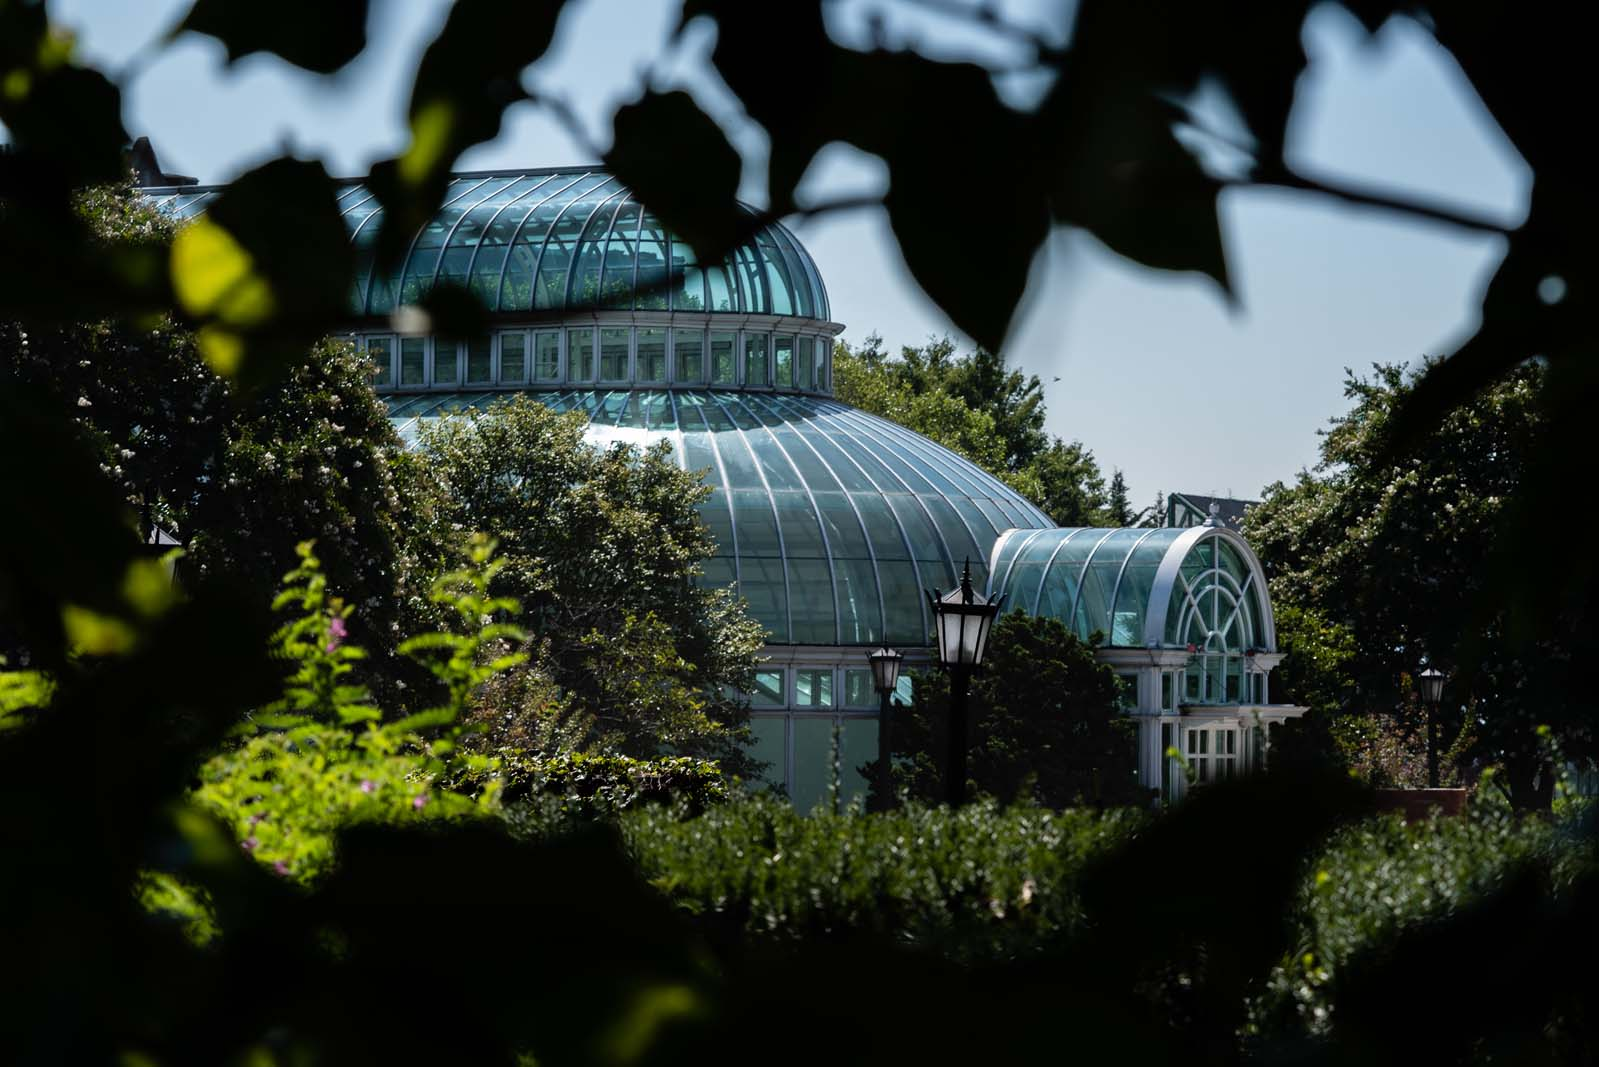 The conservatory at the Brooklyn Botanic Garden